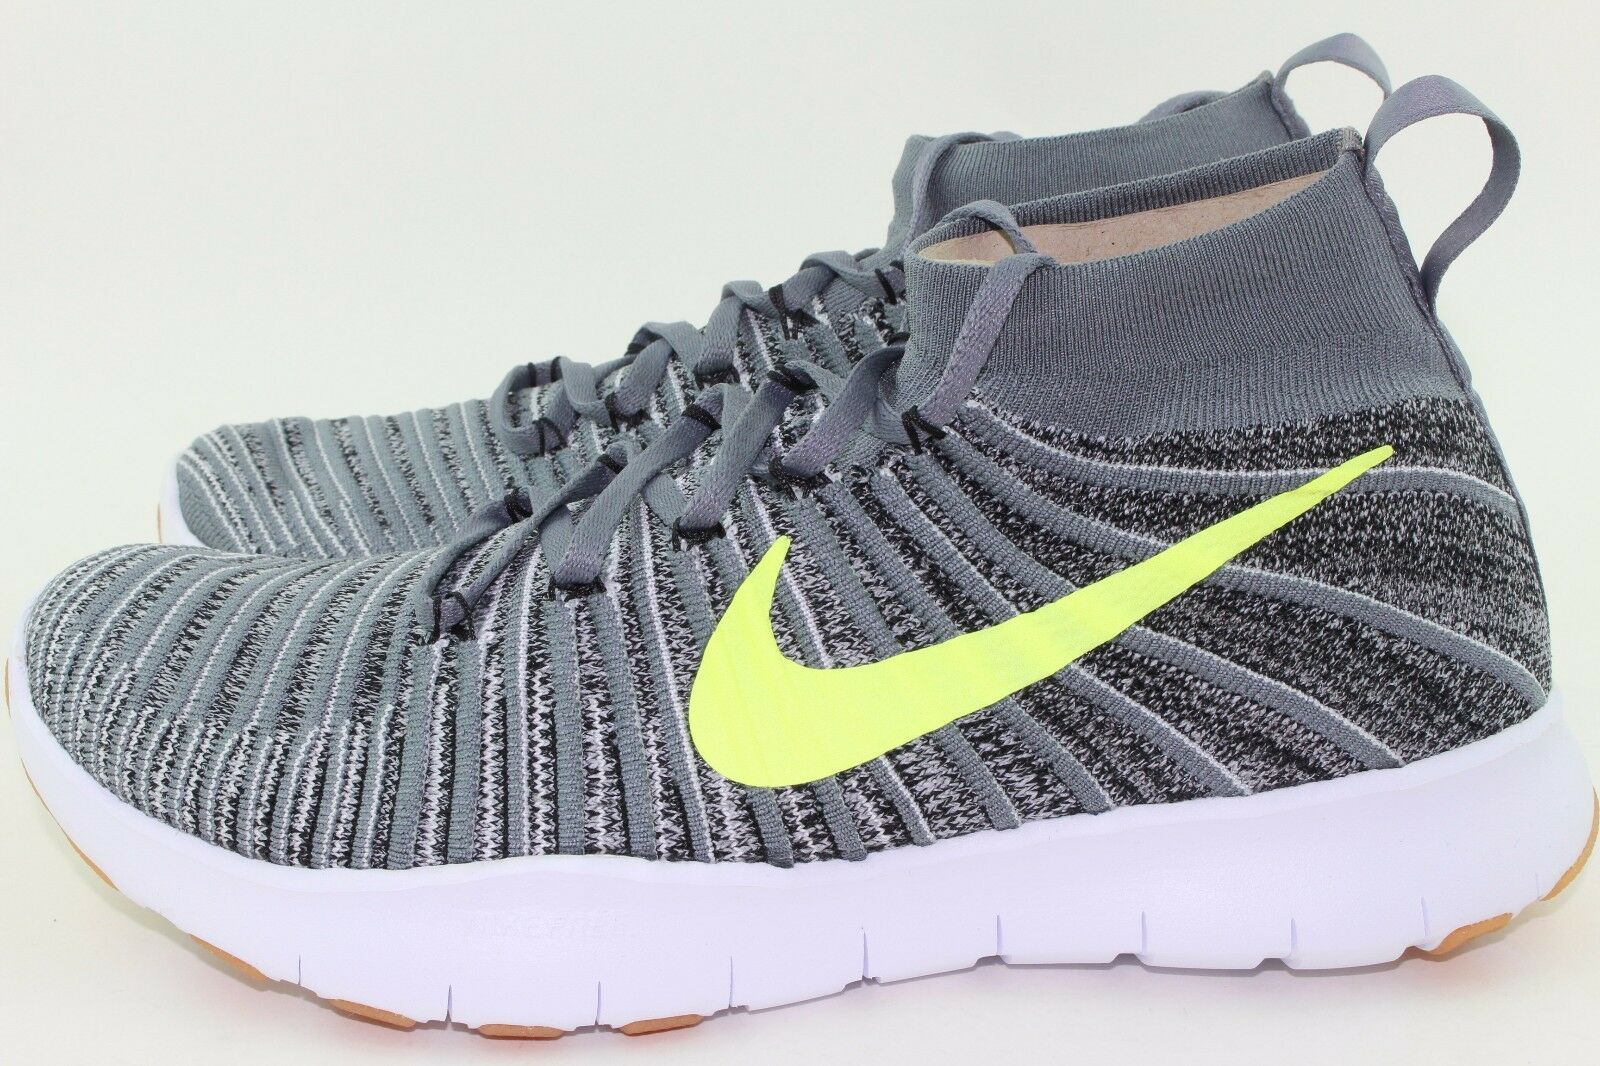 NIKE FREE TRAIN FORCE FLYKNIT MEN Größe Größe Größe 11.0 NEW AUTHENTIC TRAINING COMFORTABLE e0581f